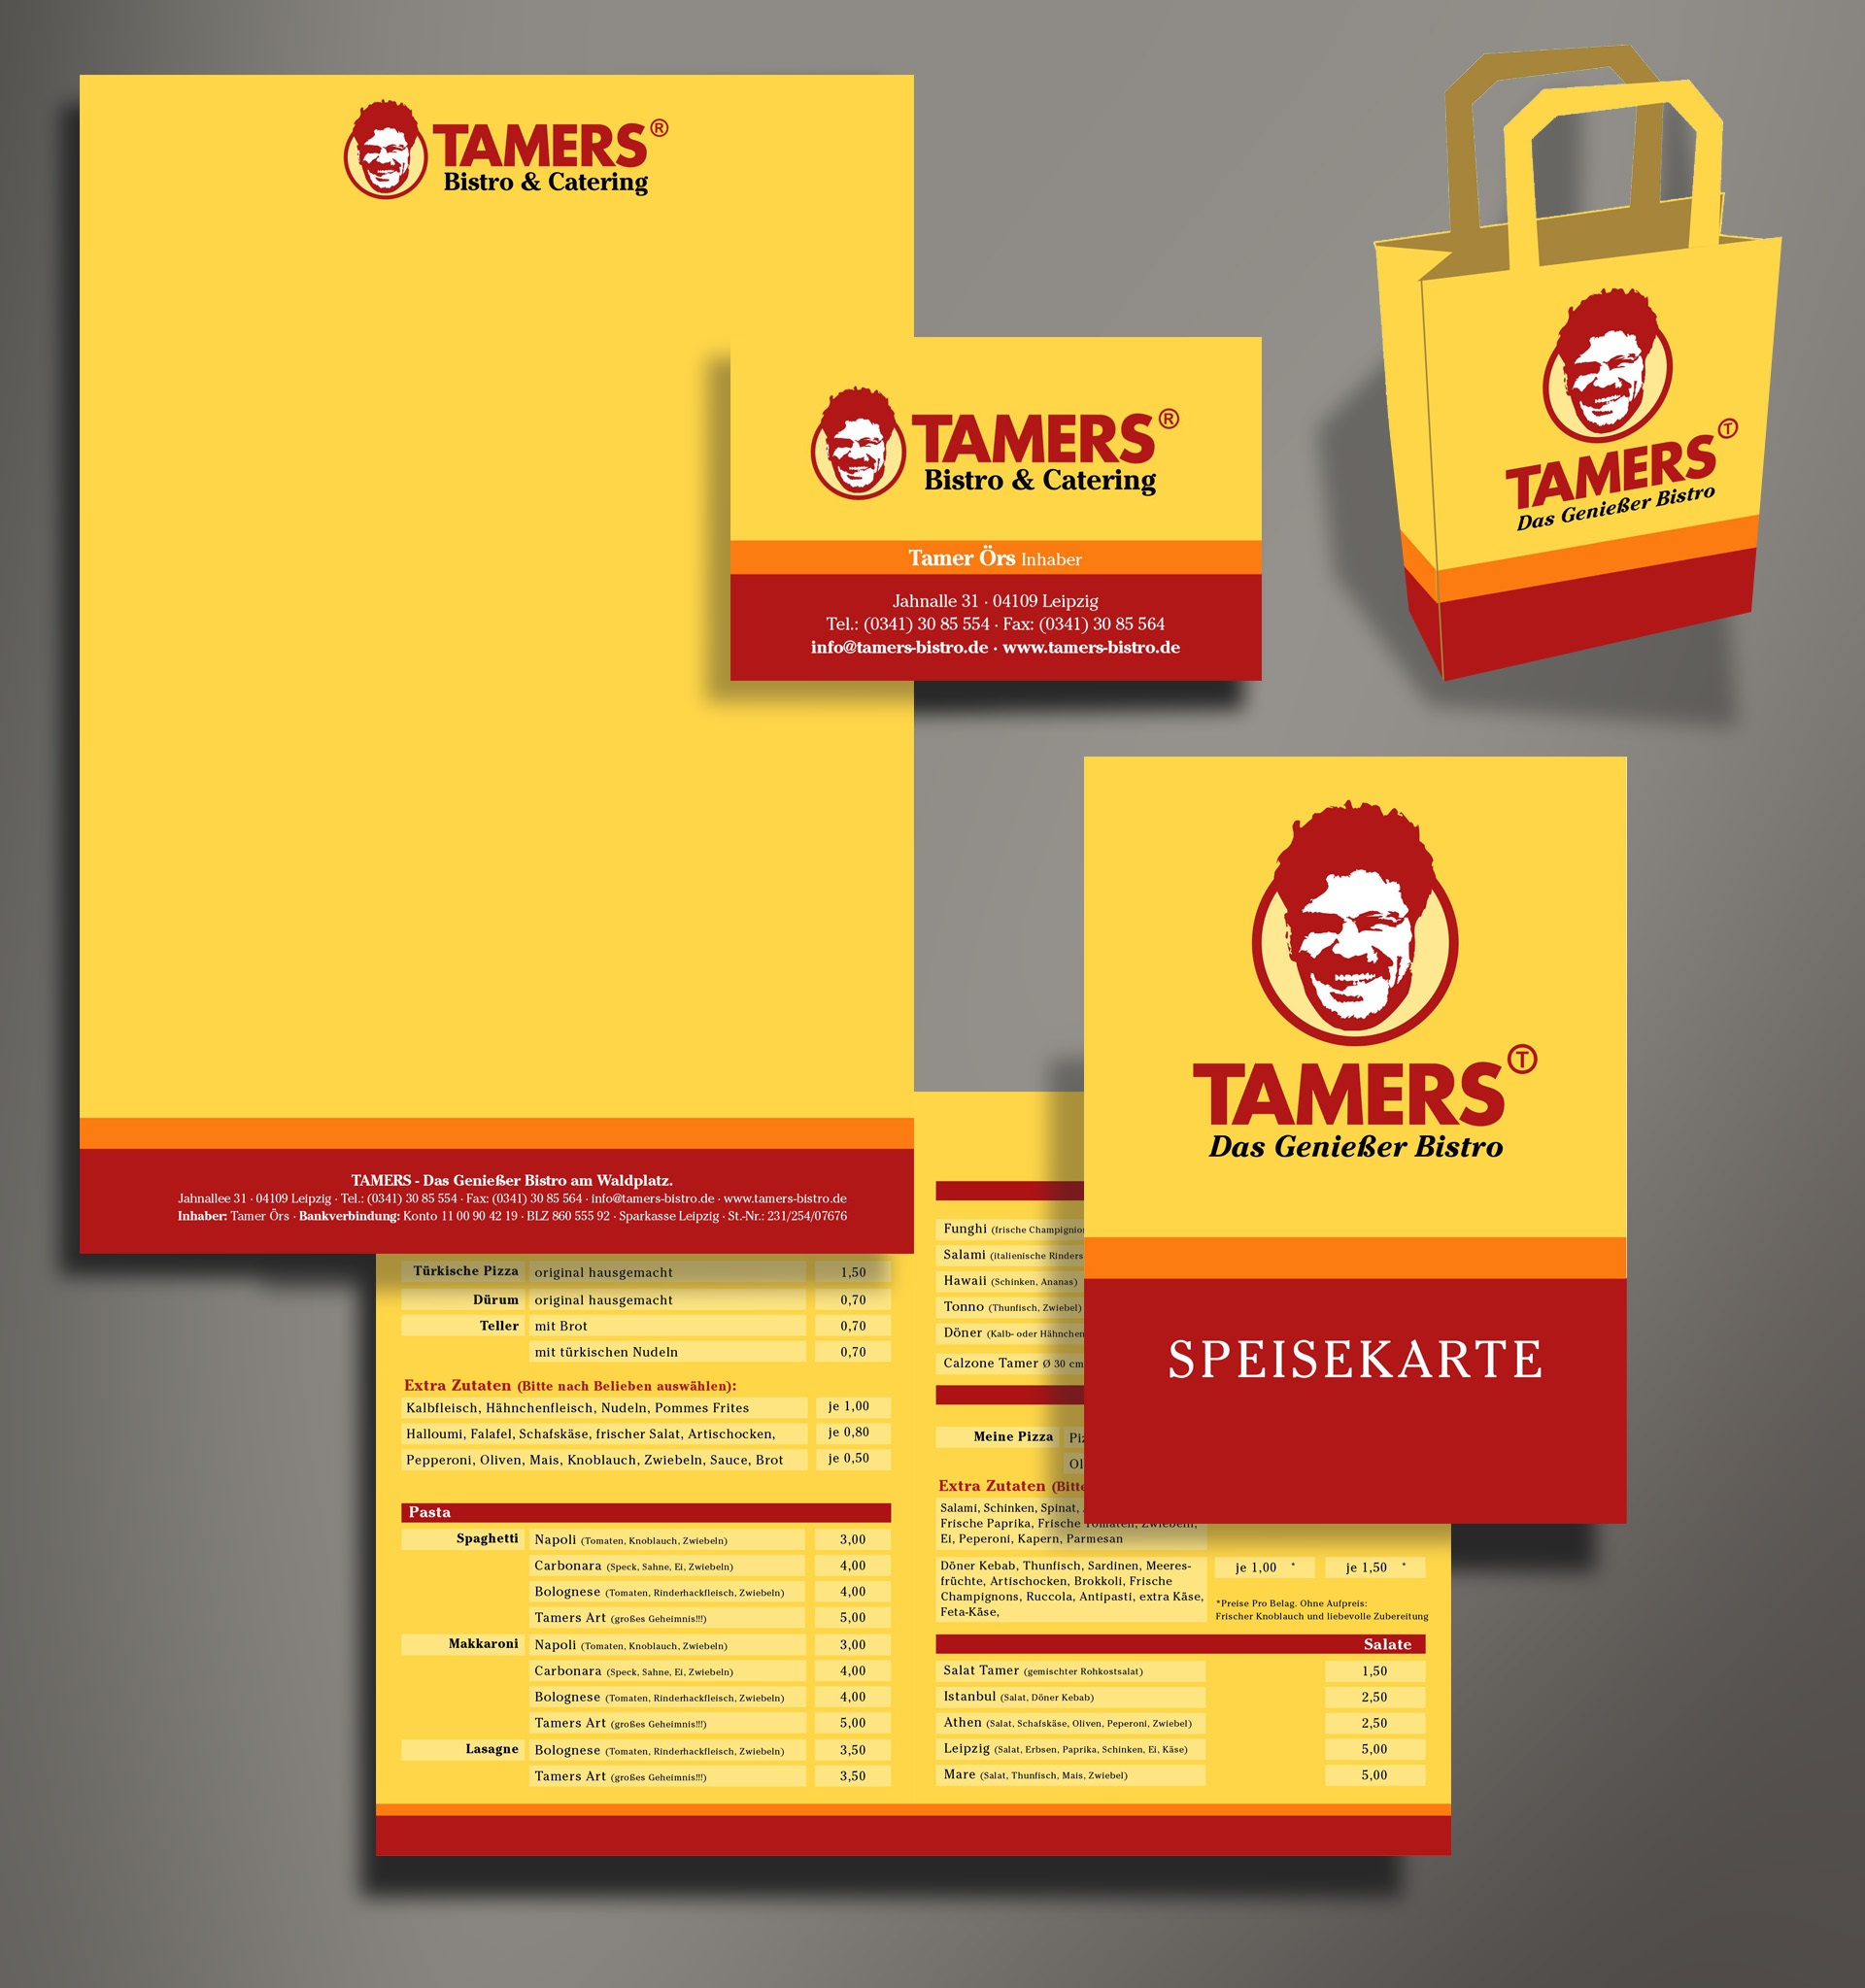 TAMERS Corporate Design Reichelt